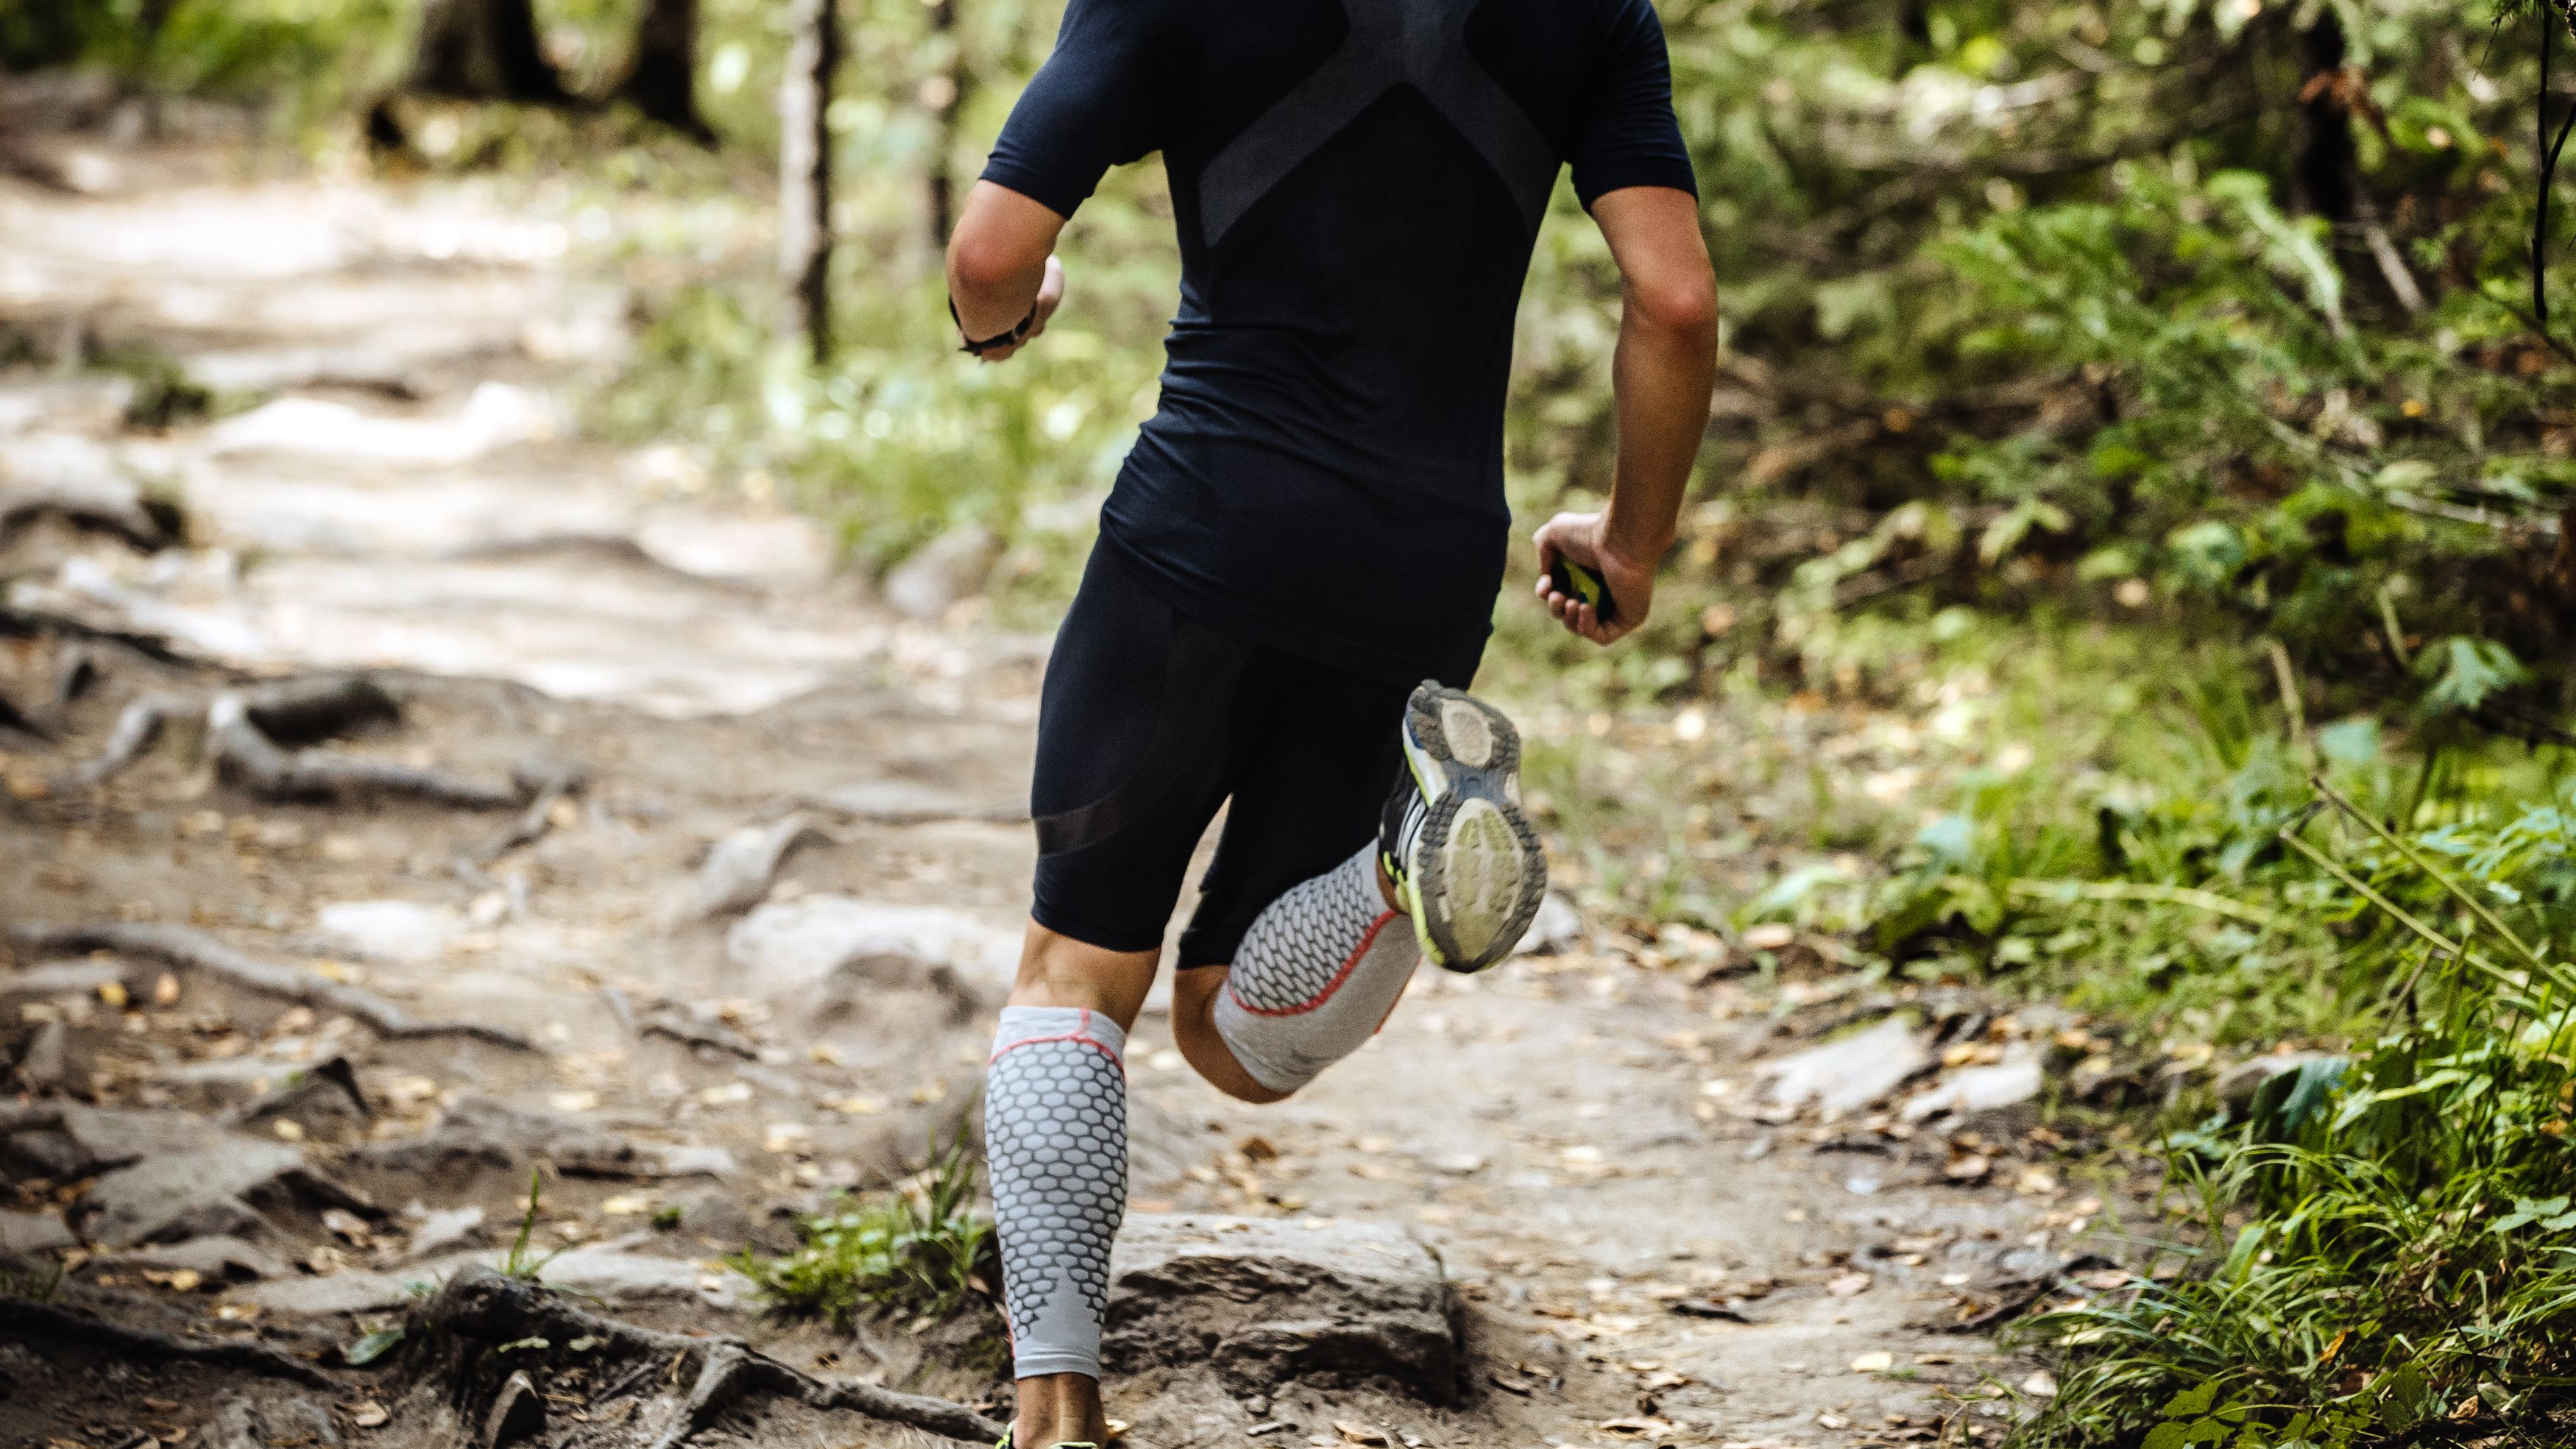 37150f46a9643 The 6 Best Calf Compression Sleeves of 2019